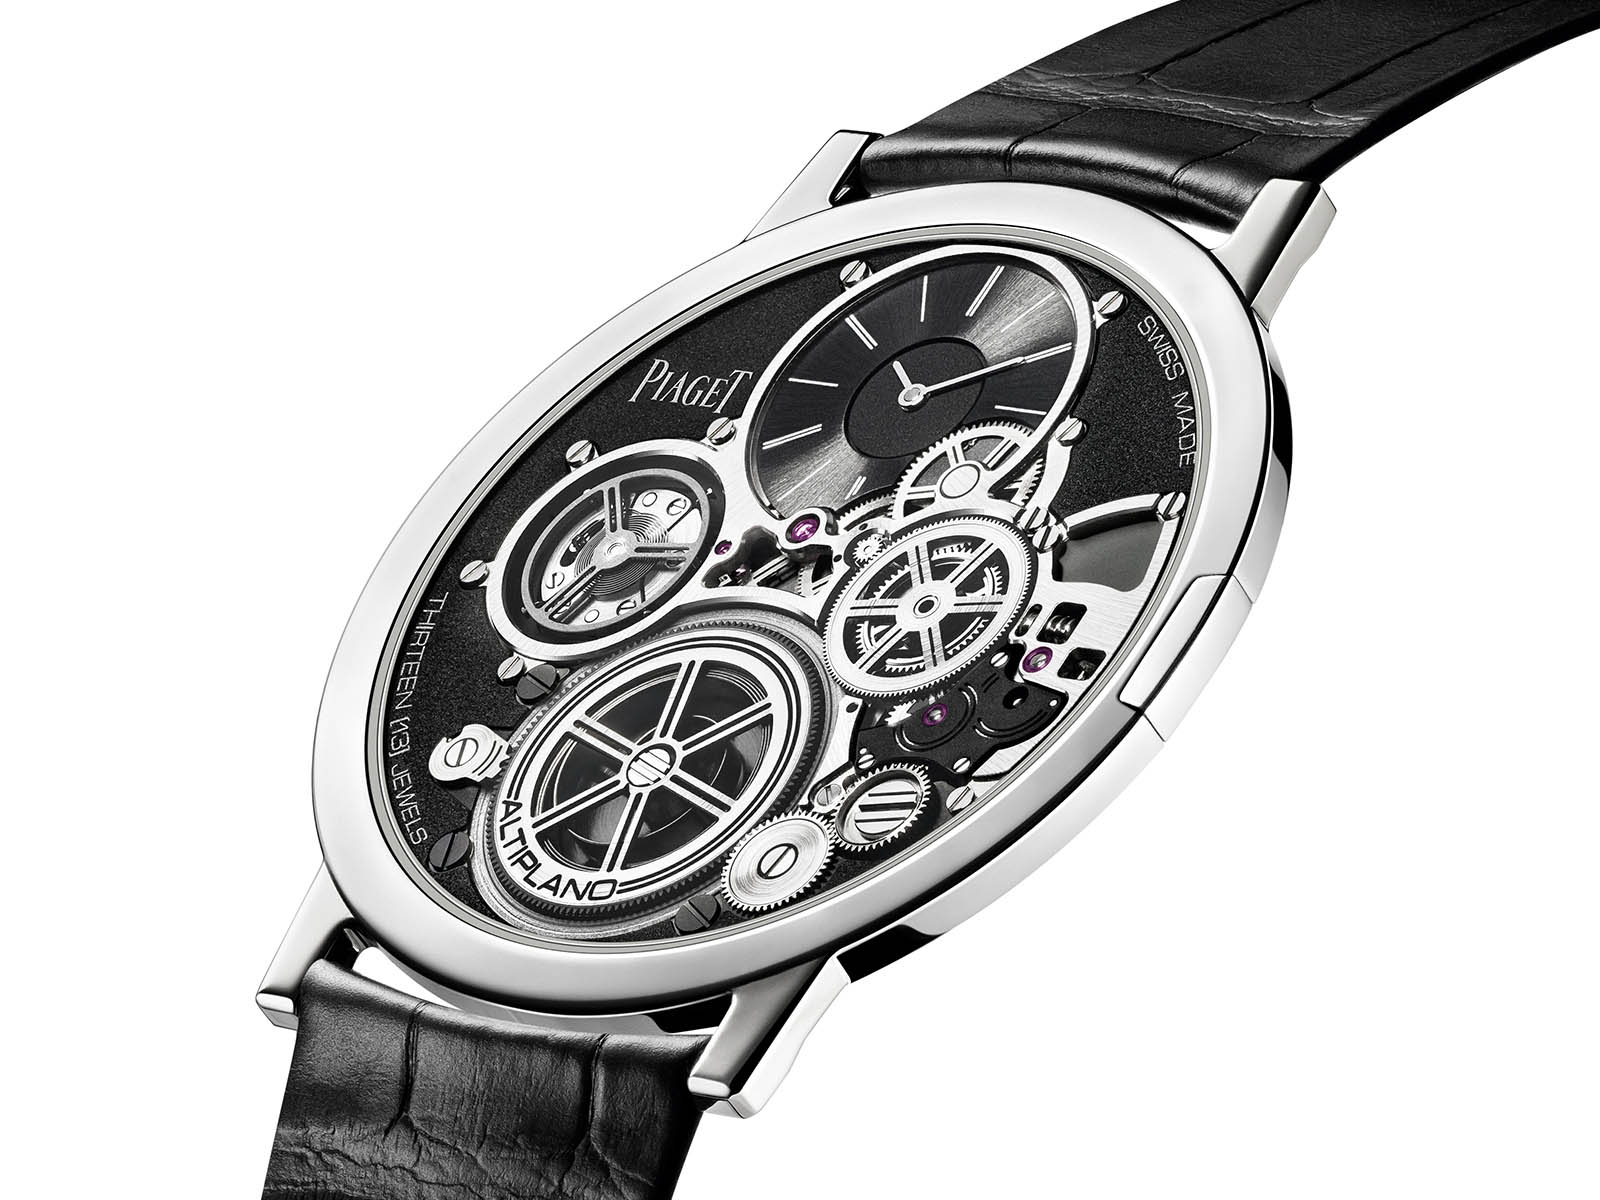 g0a43900-piaget-altiplano-ultimate-concept-prototype-2.jpg